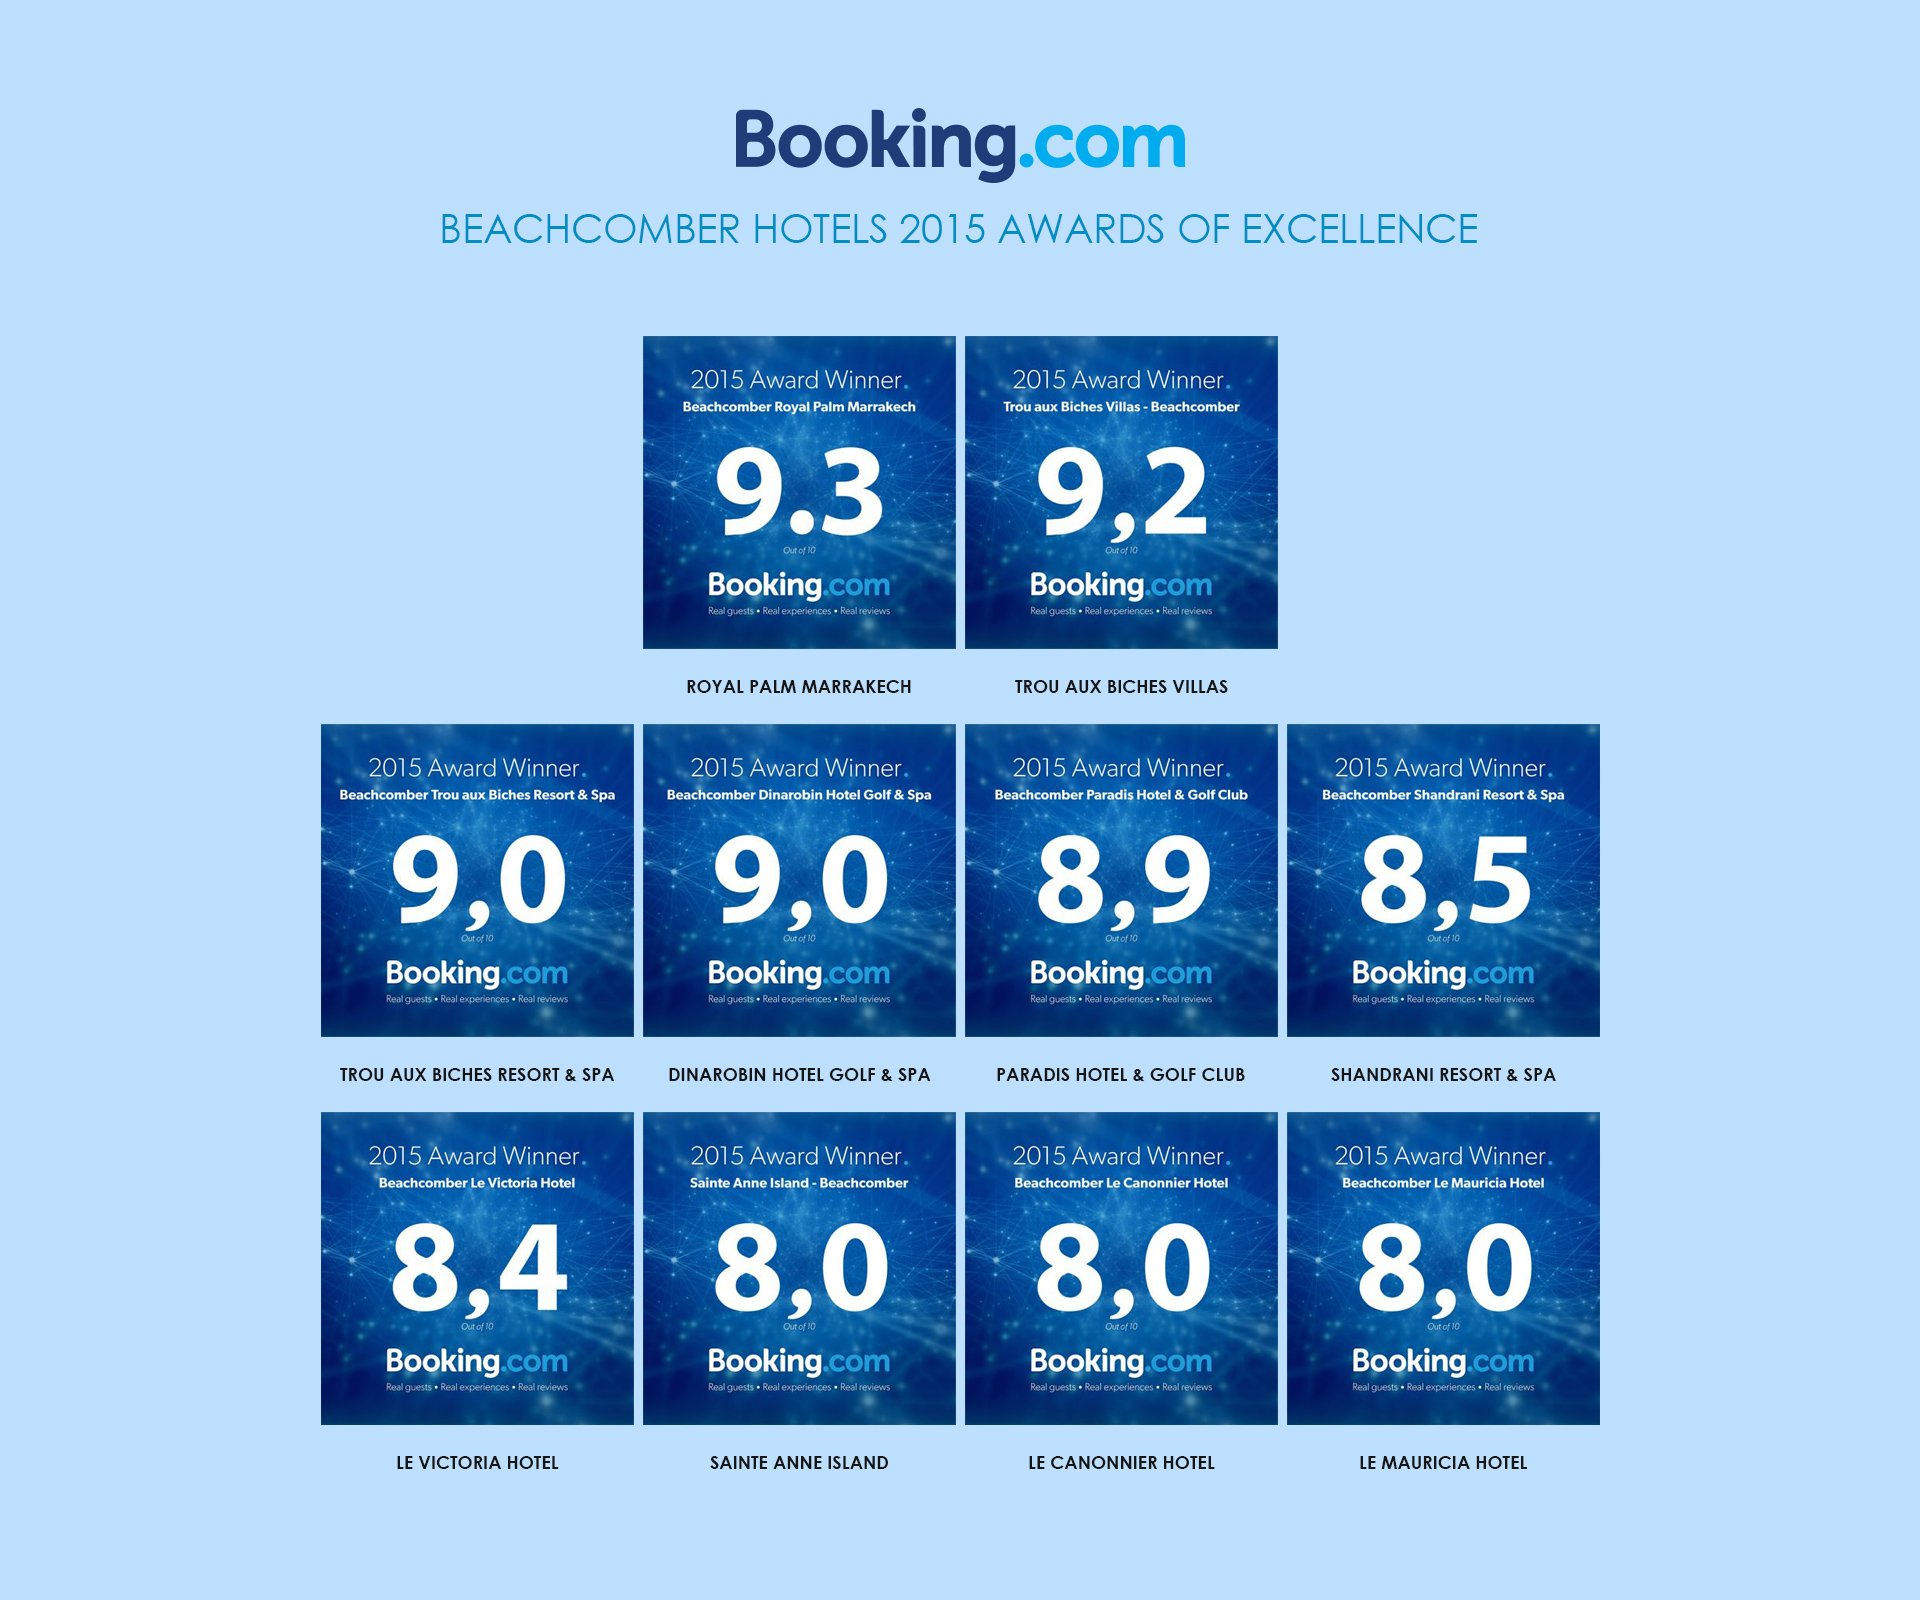 bch bookings